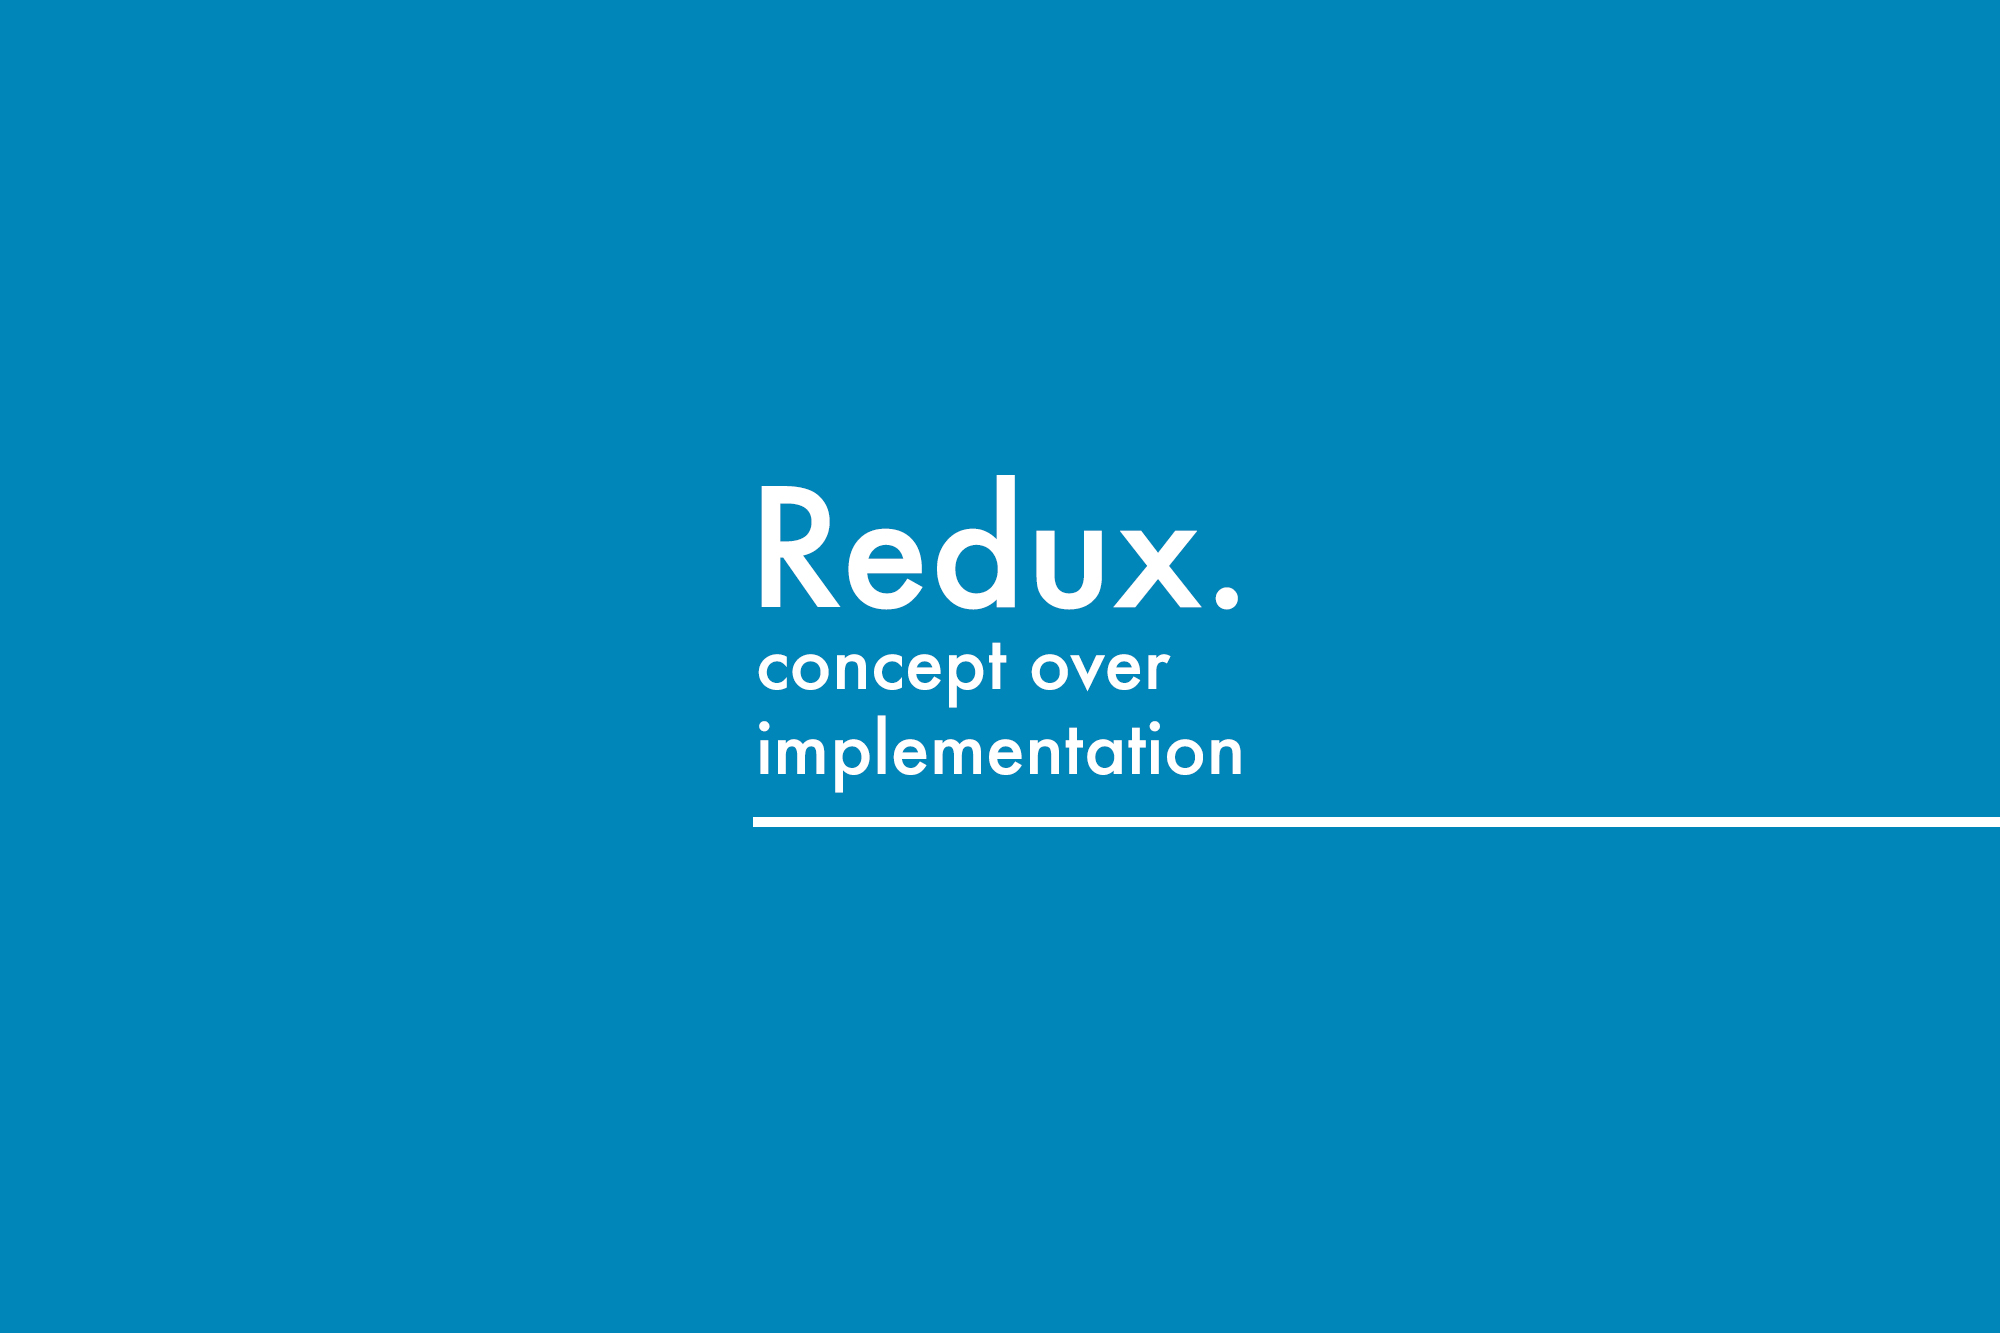 redux concept over implementation